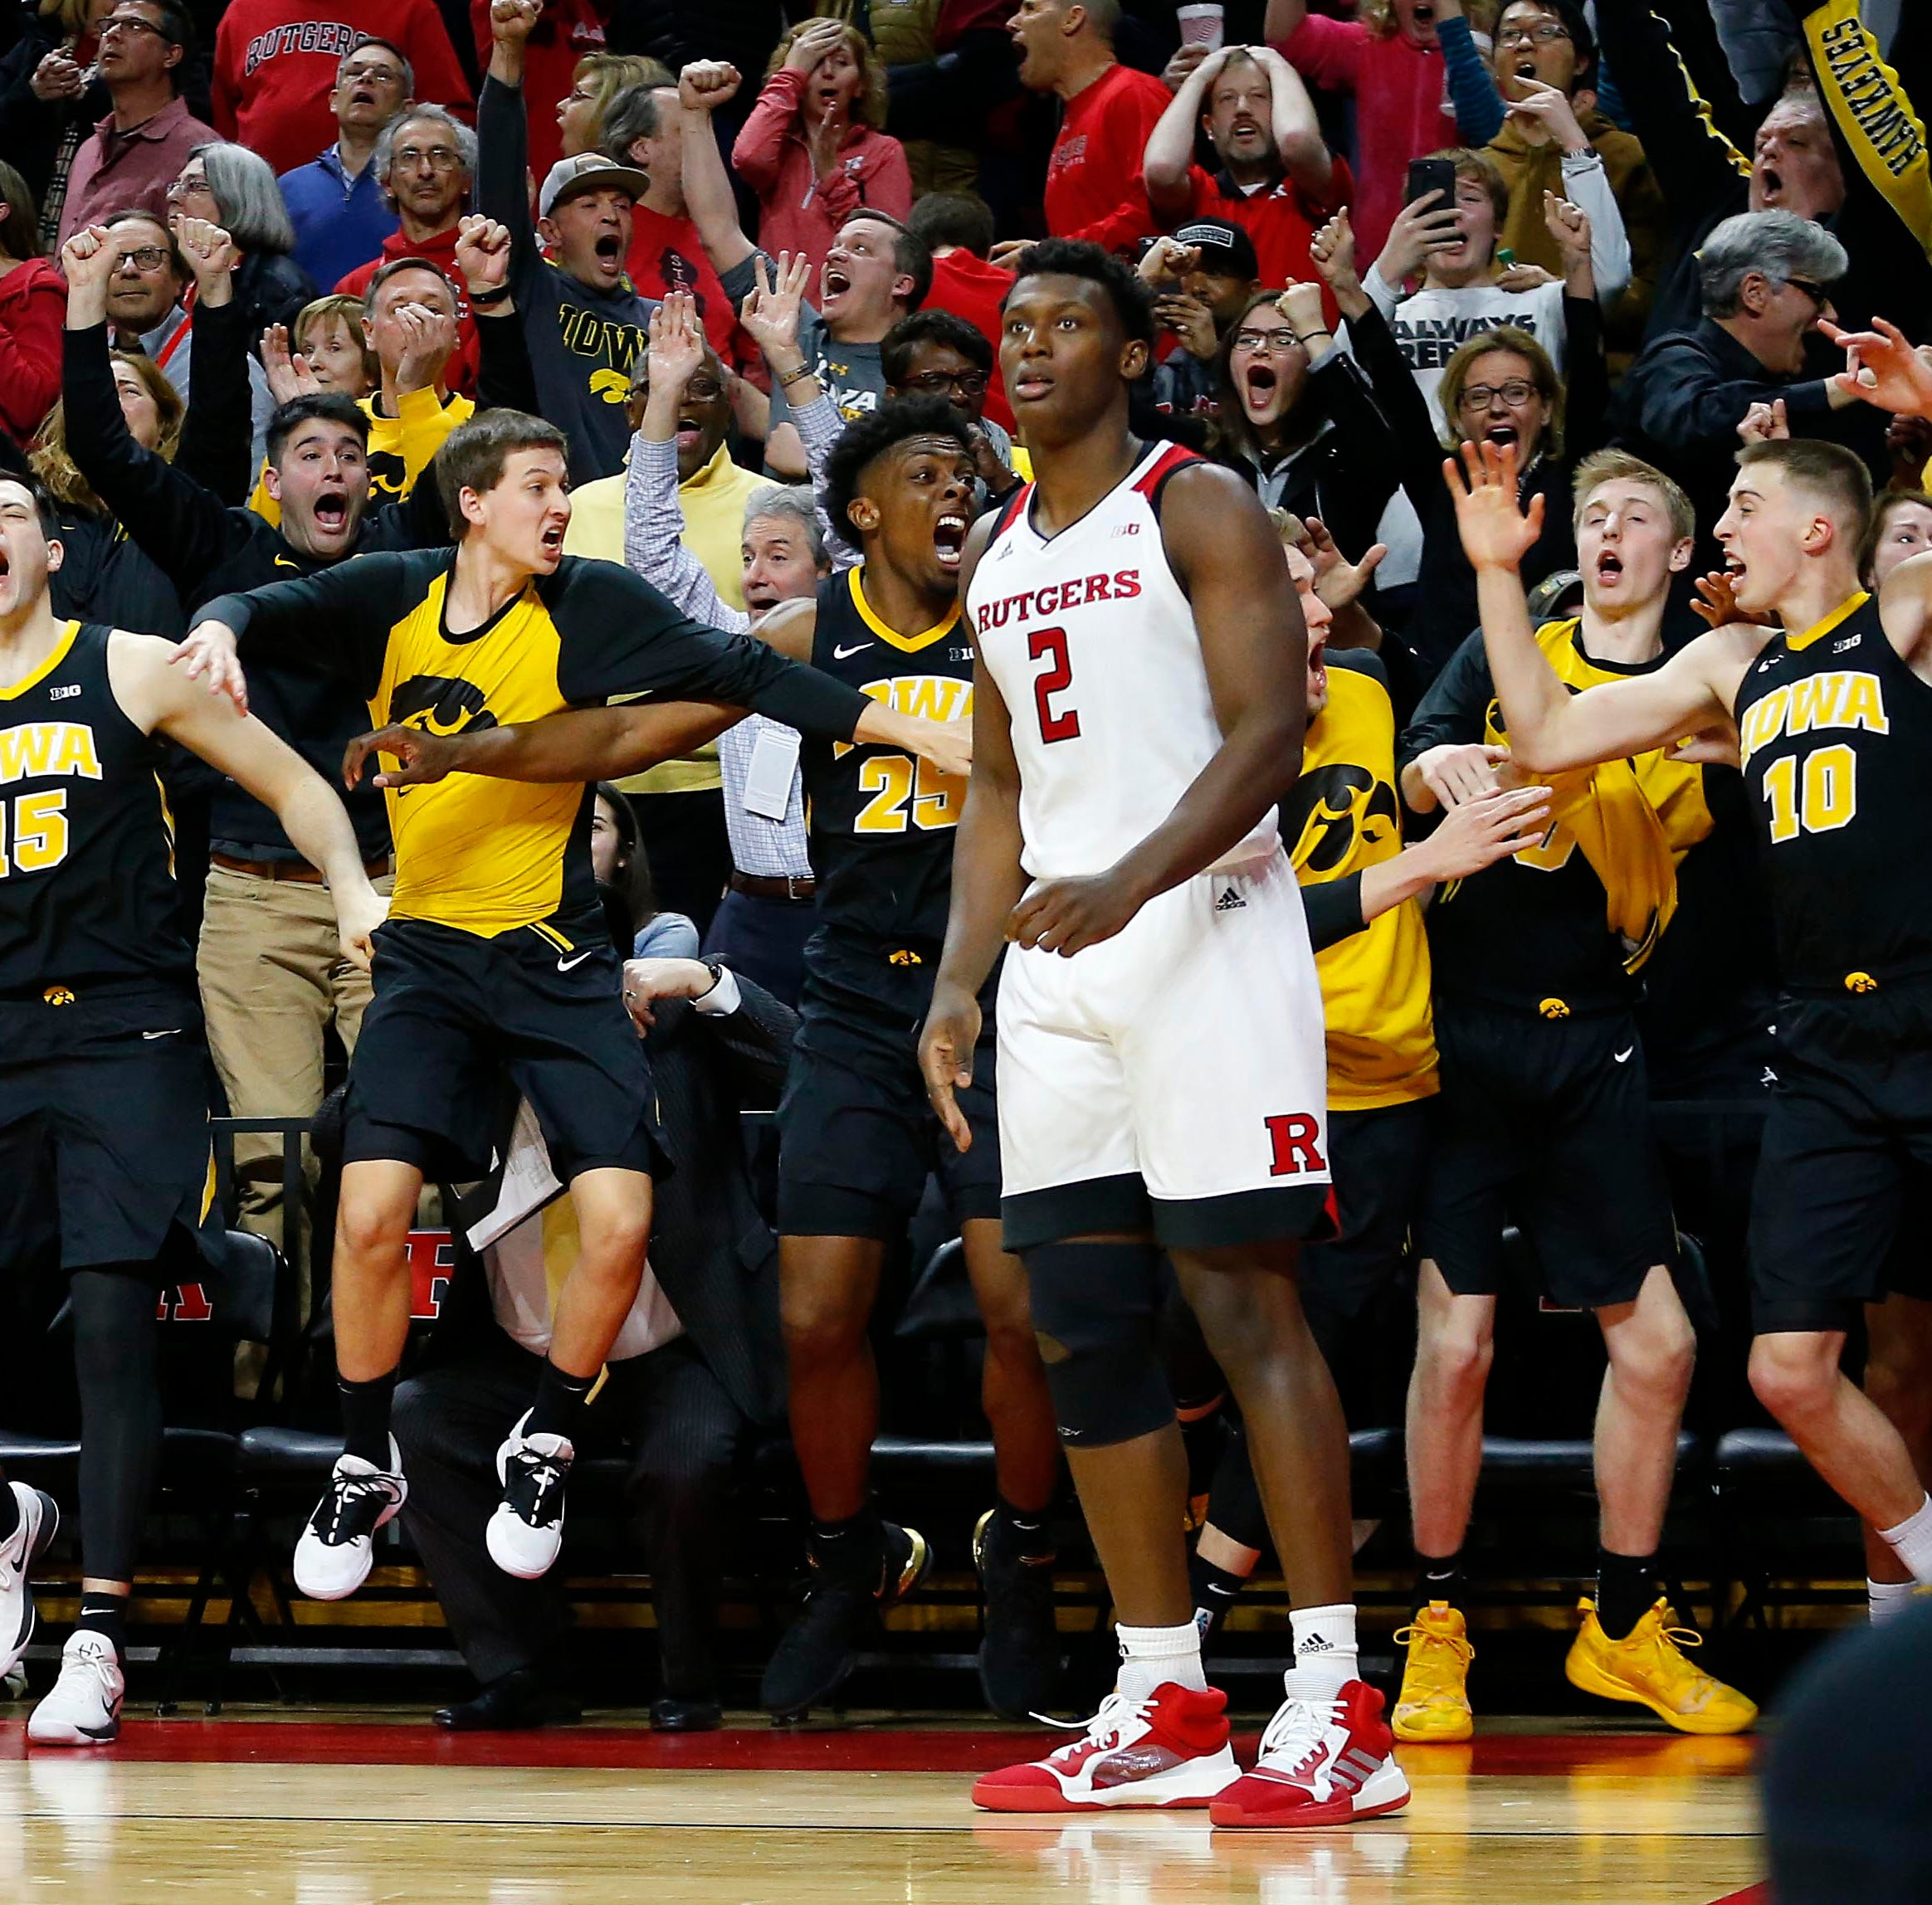 Rutgers hoops: Joe Wieskamp and the anatomy of Iowa's last-second RAC gut-punch